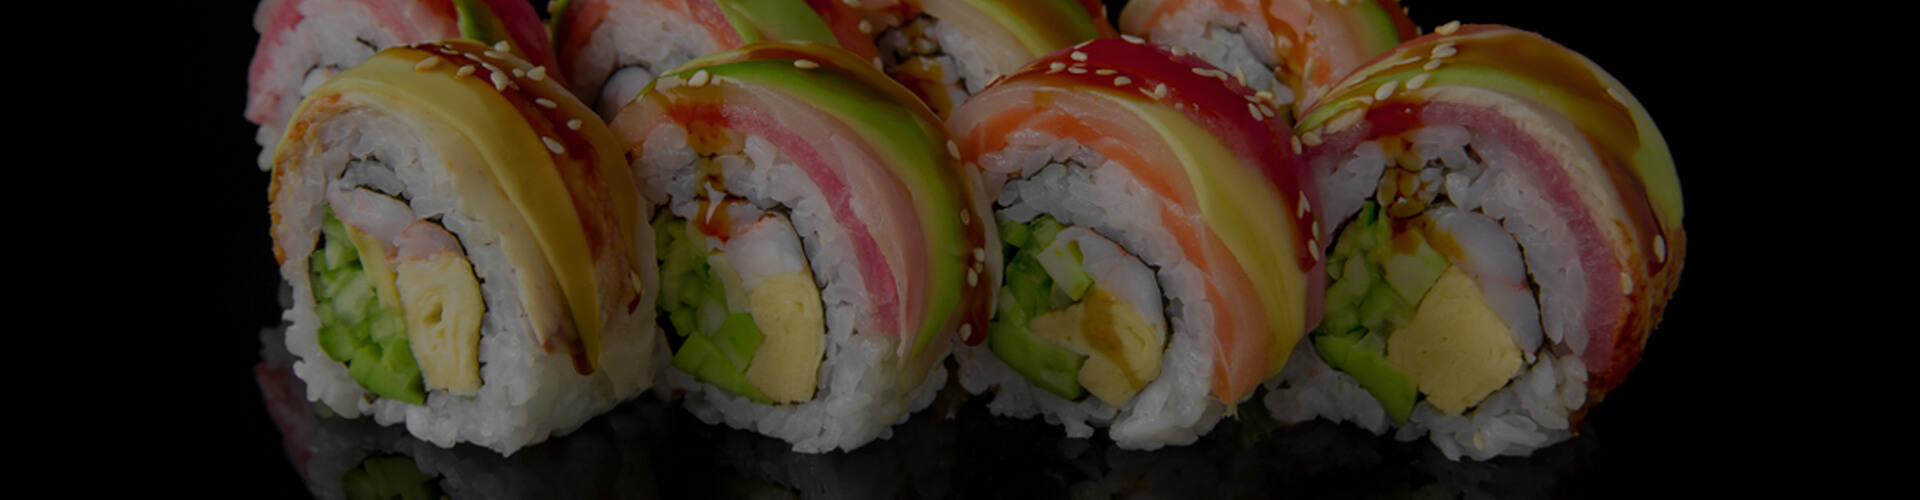 Restaurants in Geneva | Wasabi Sushibar